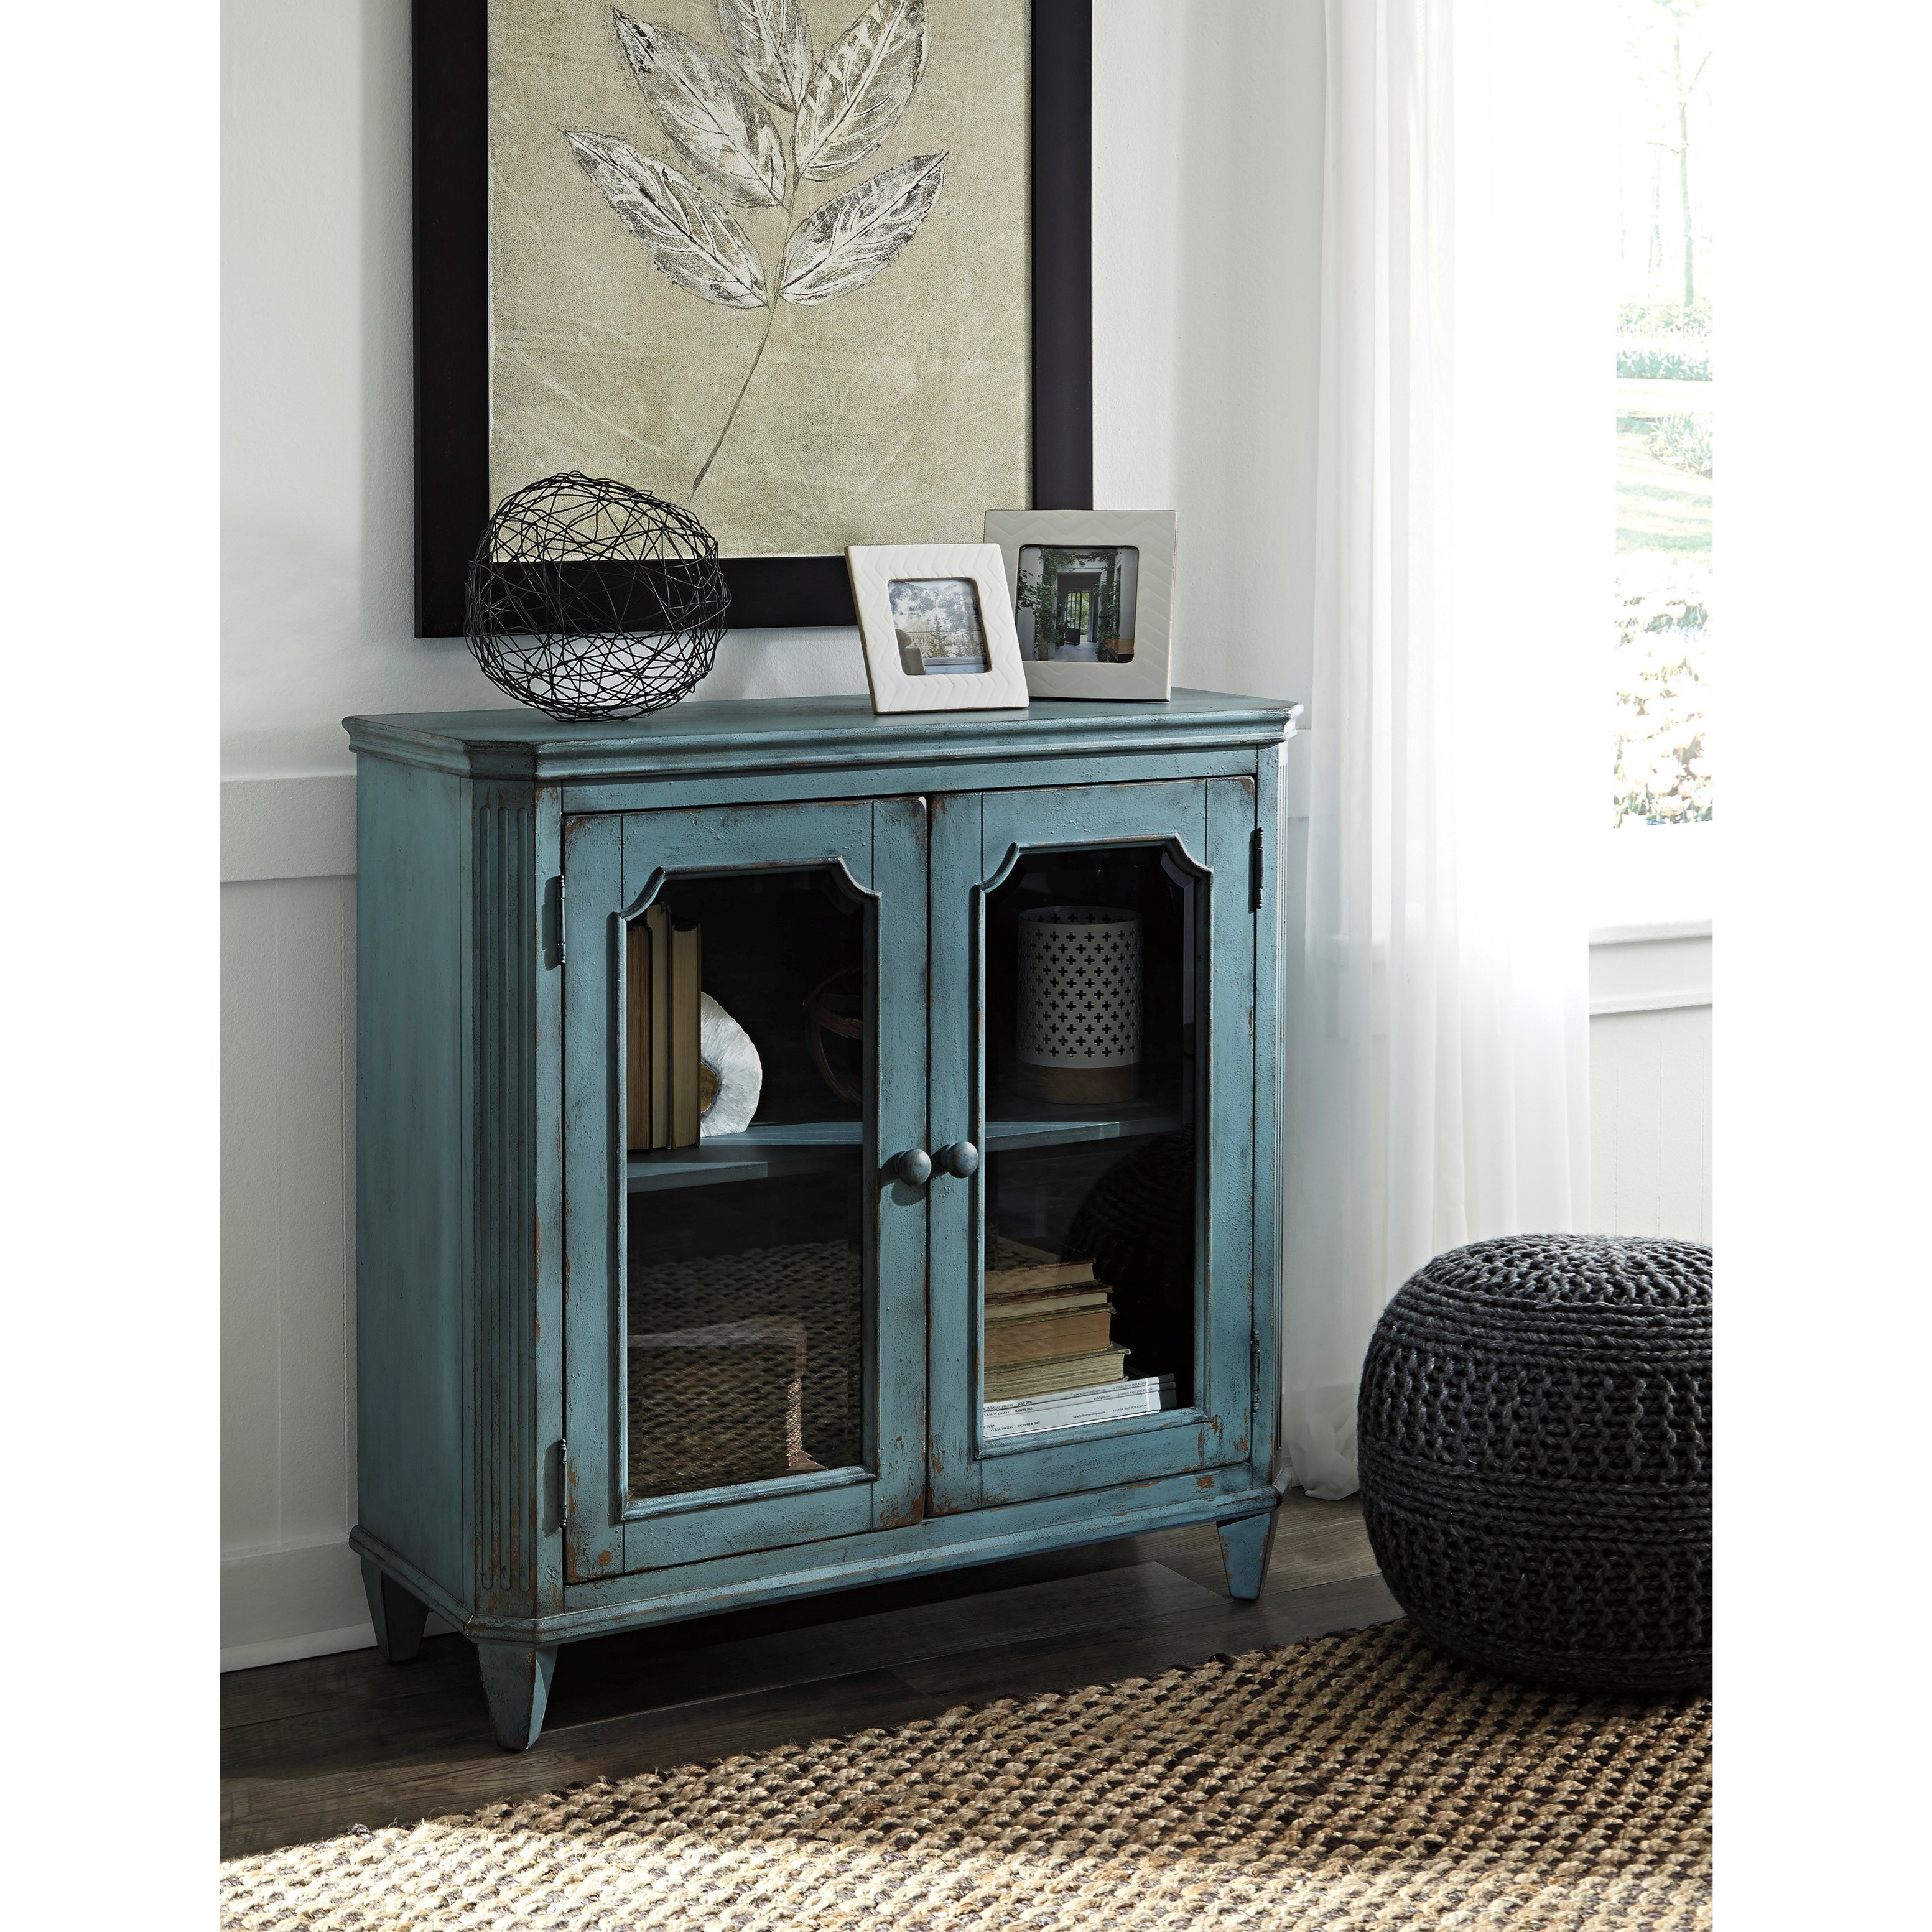 Walentin Accent Cabinet By Ashley Furniture: Ashley (Signature Design) Mirimyn French Provincial Style